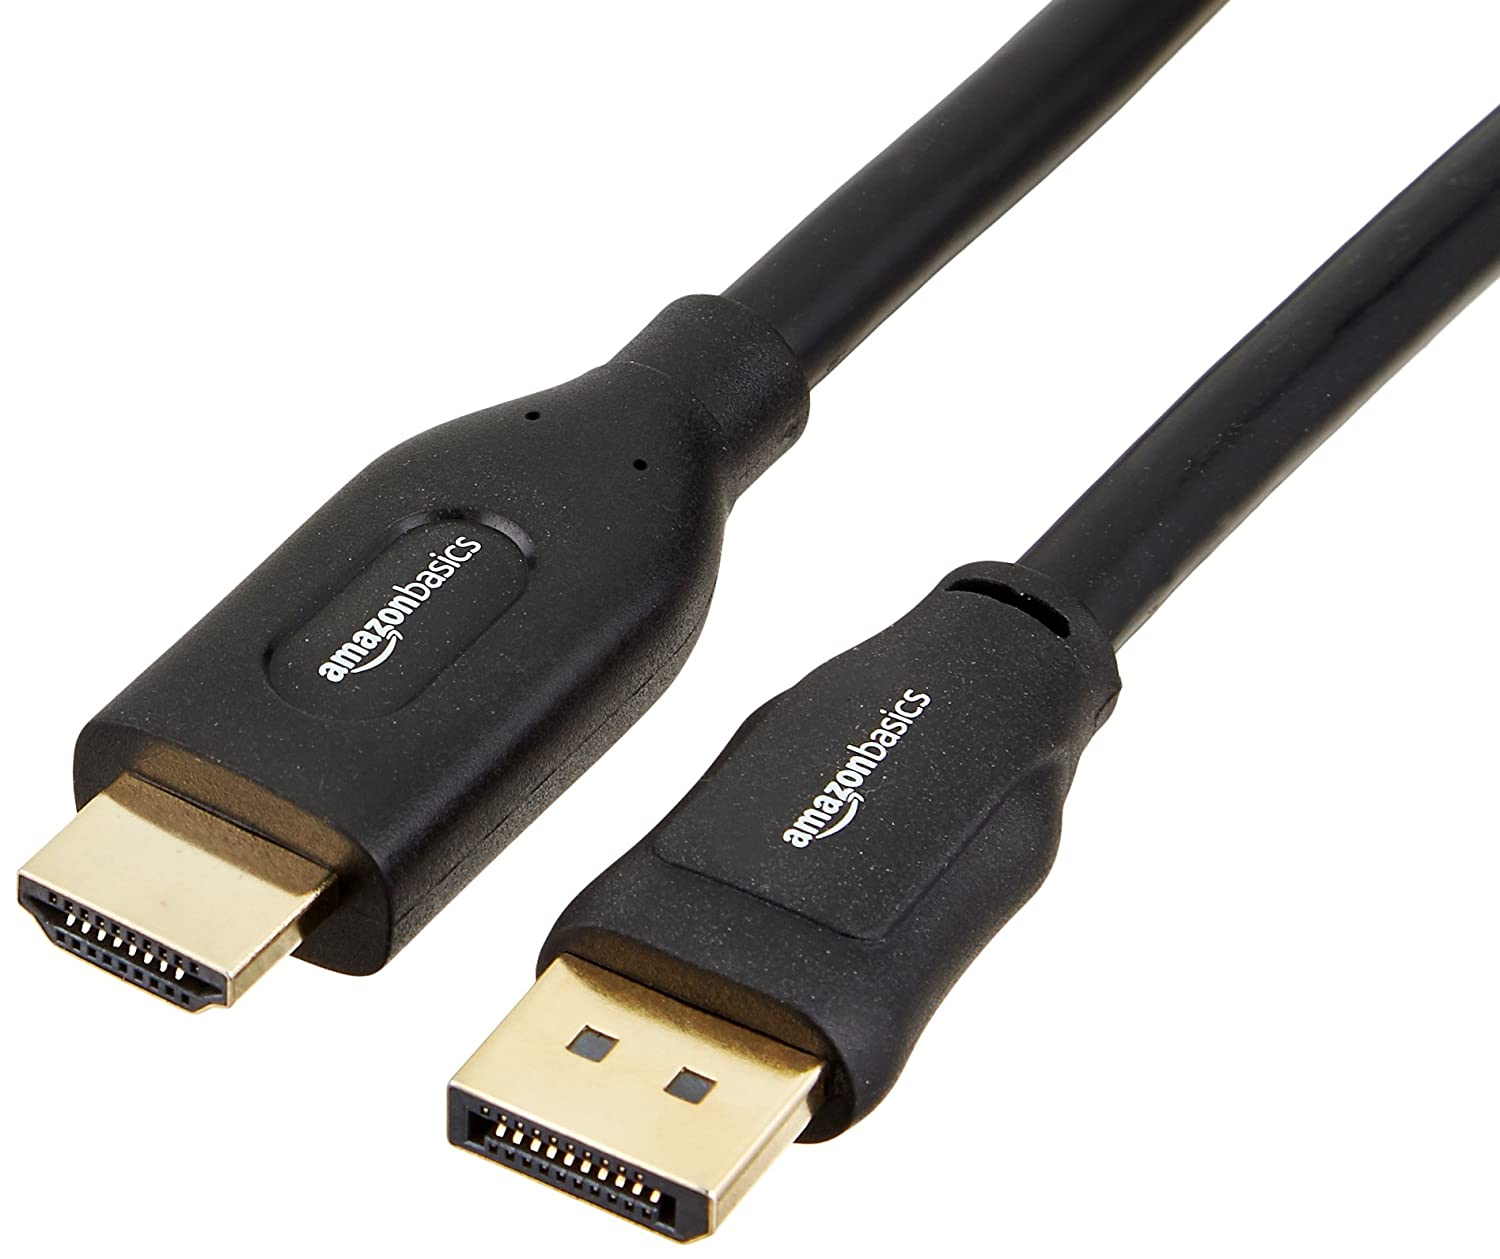 AmazonBasics DisplayPort to HDMI Cable - 15 Feet